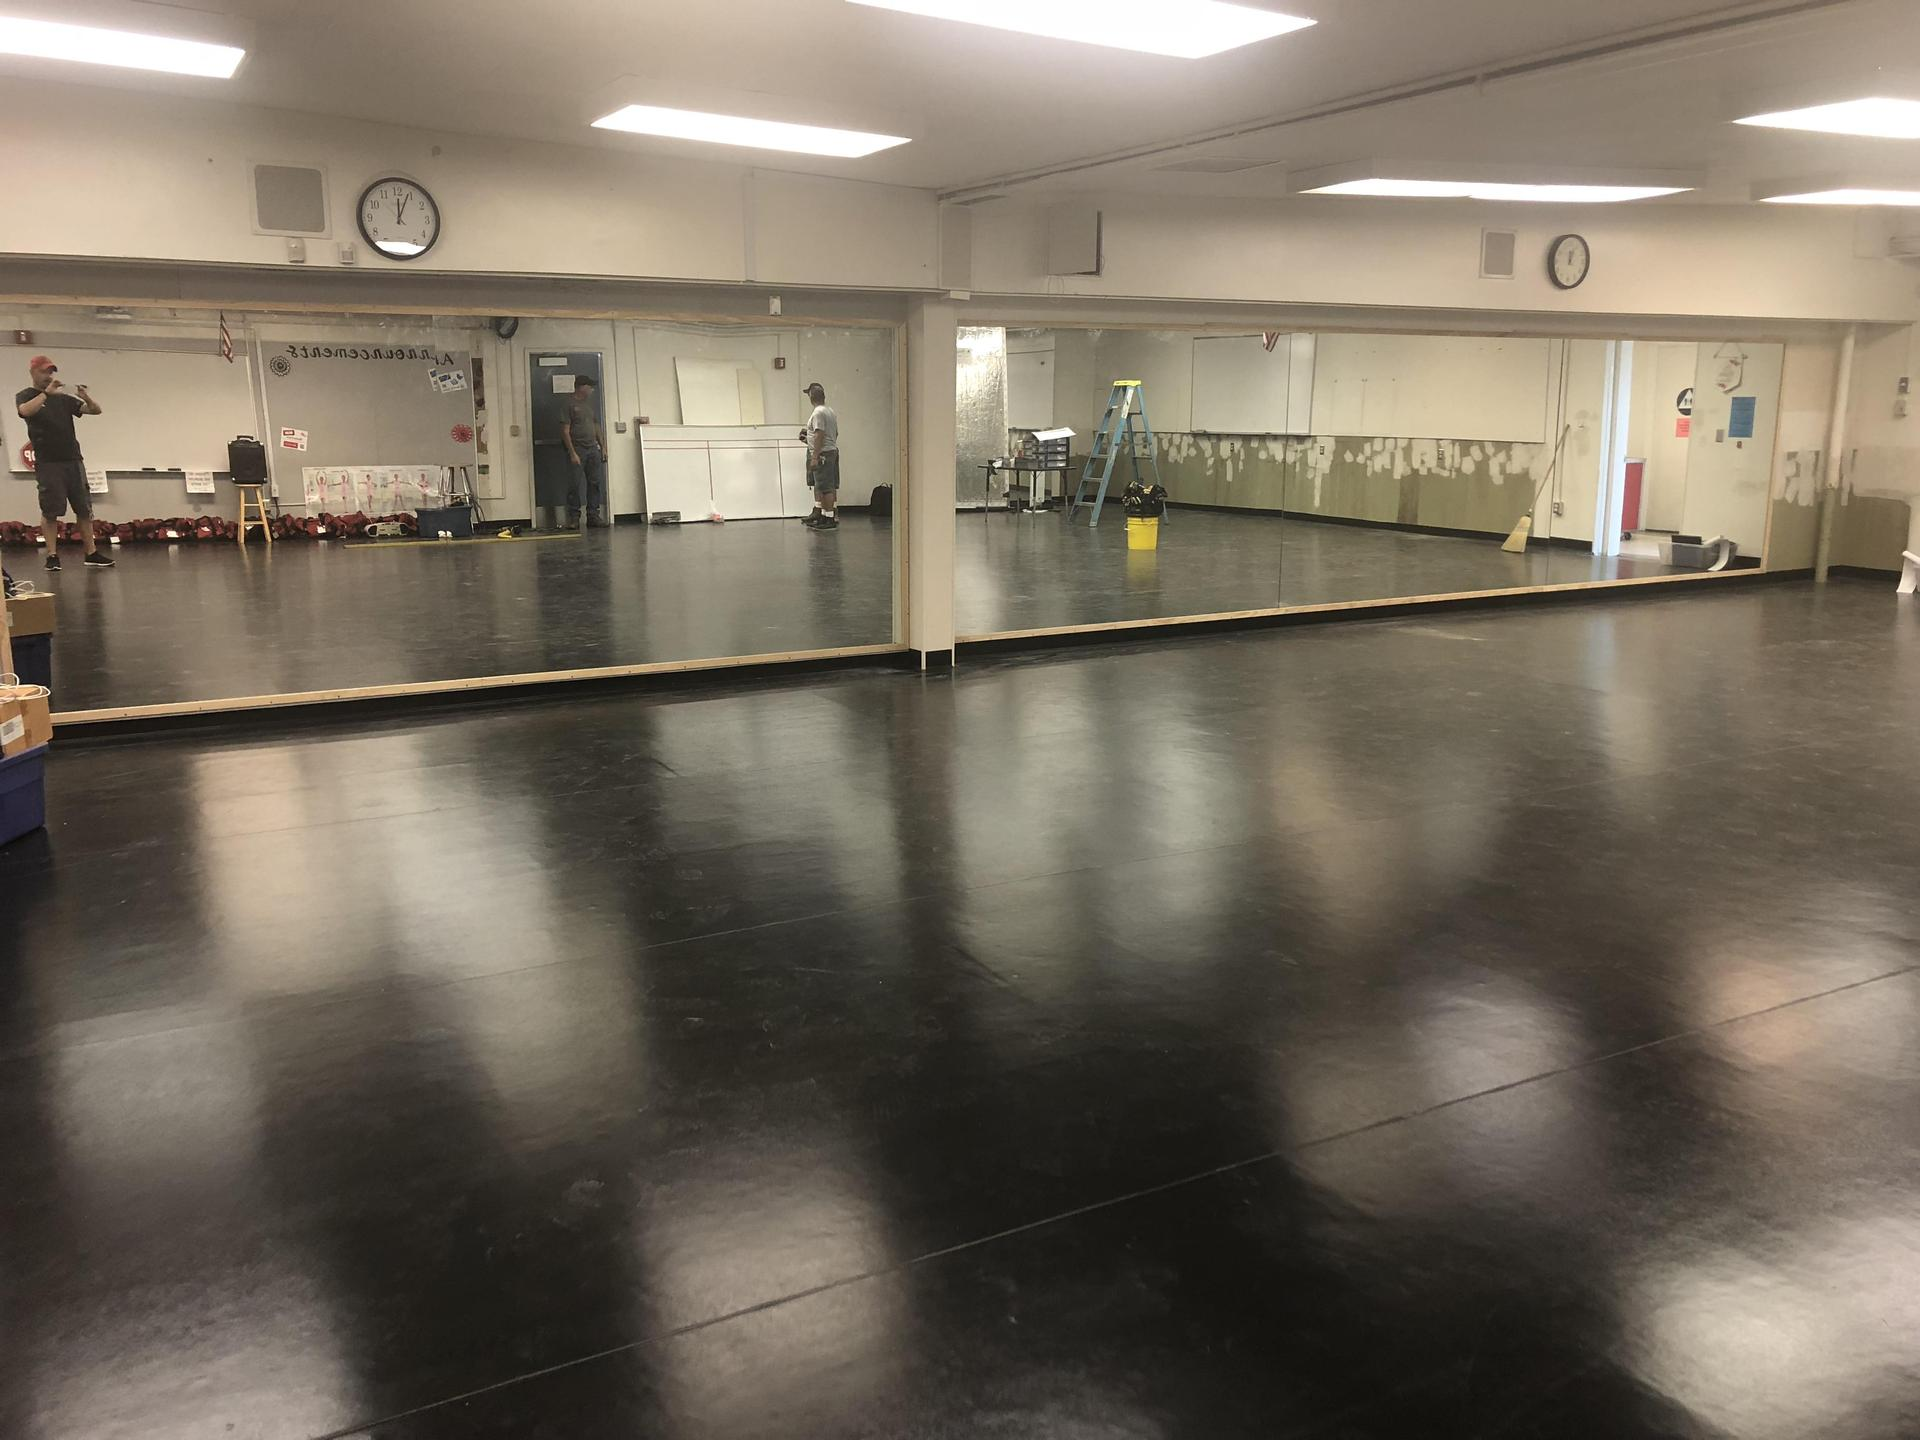 The new dance floor and mirrors are done at Nicolas...time to dance!